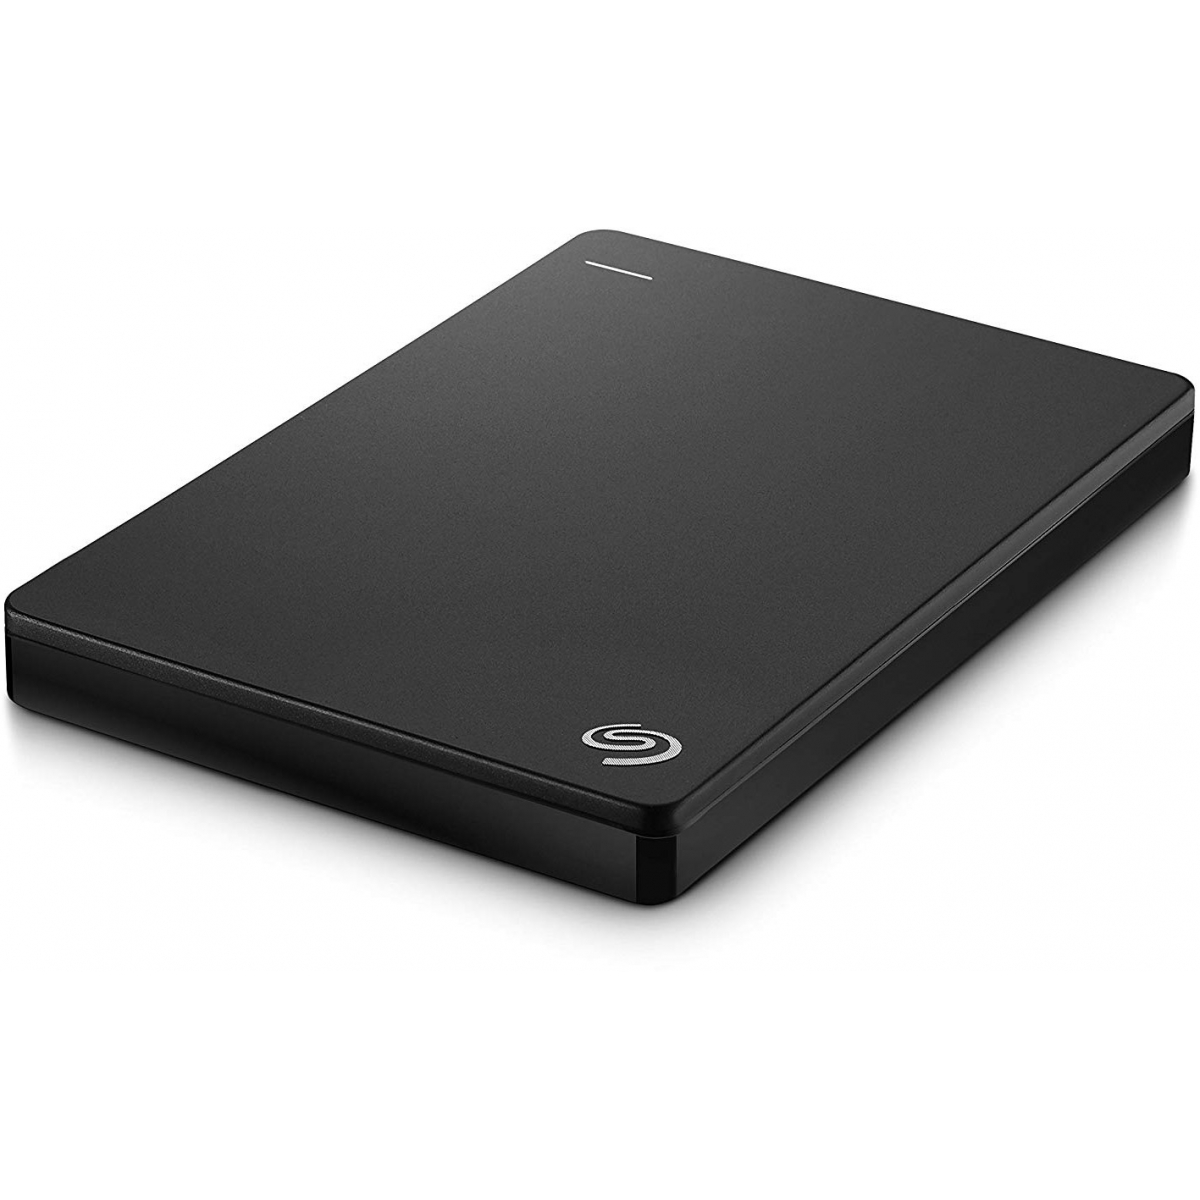 HD Externo Portátil Seagate Backup Plus SLim 2TB, USB 3.0, STDR2000100